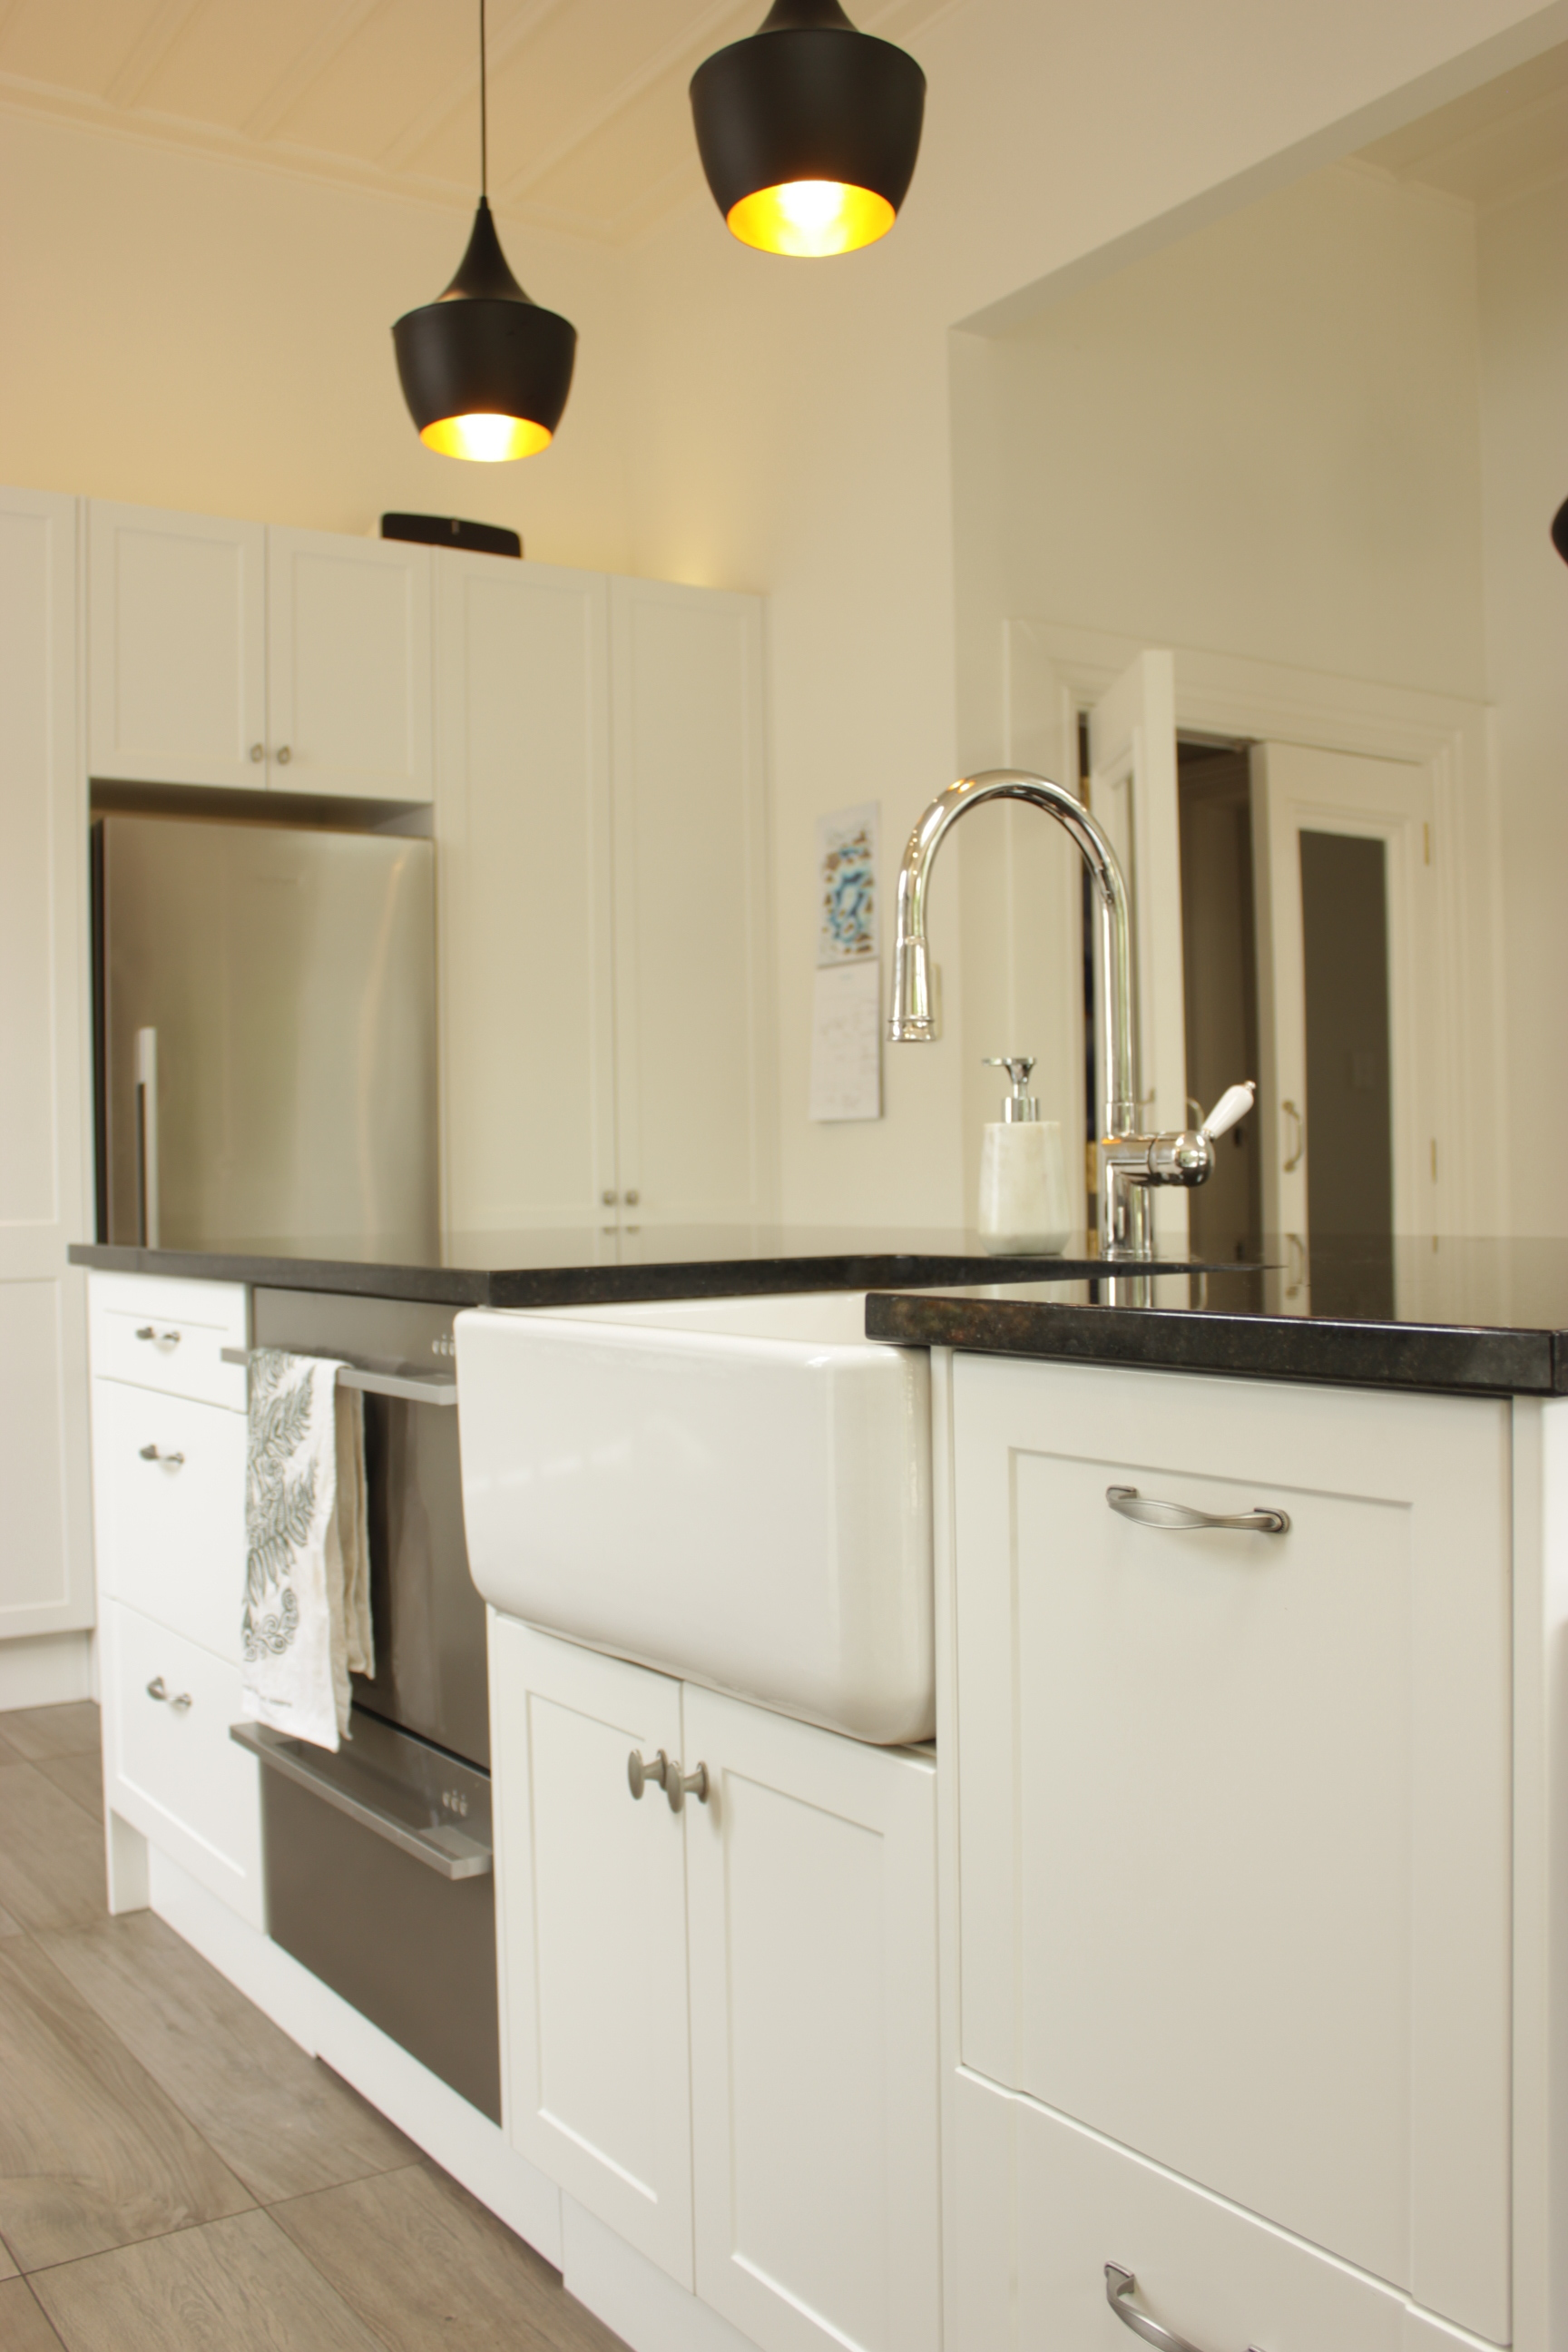 how to renovate a kitchen sink images i renovation